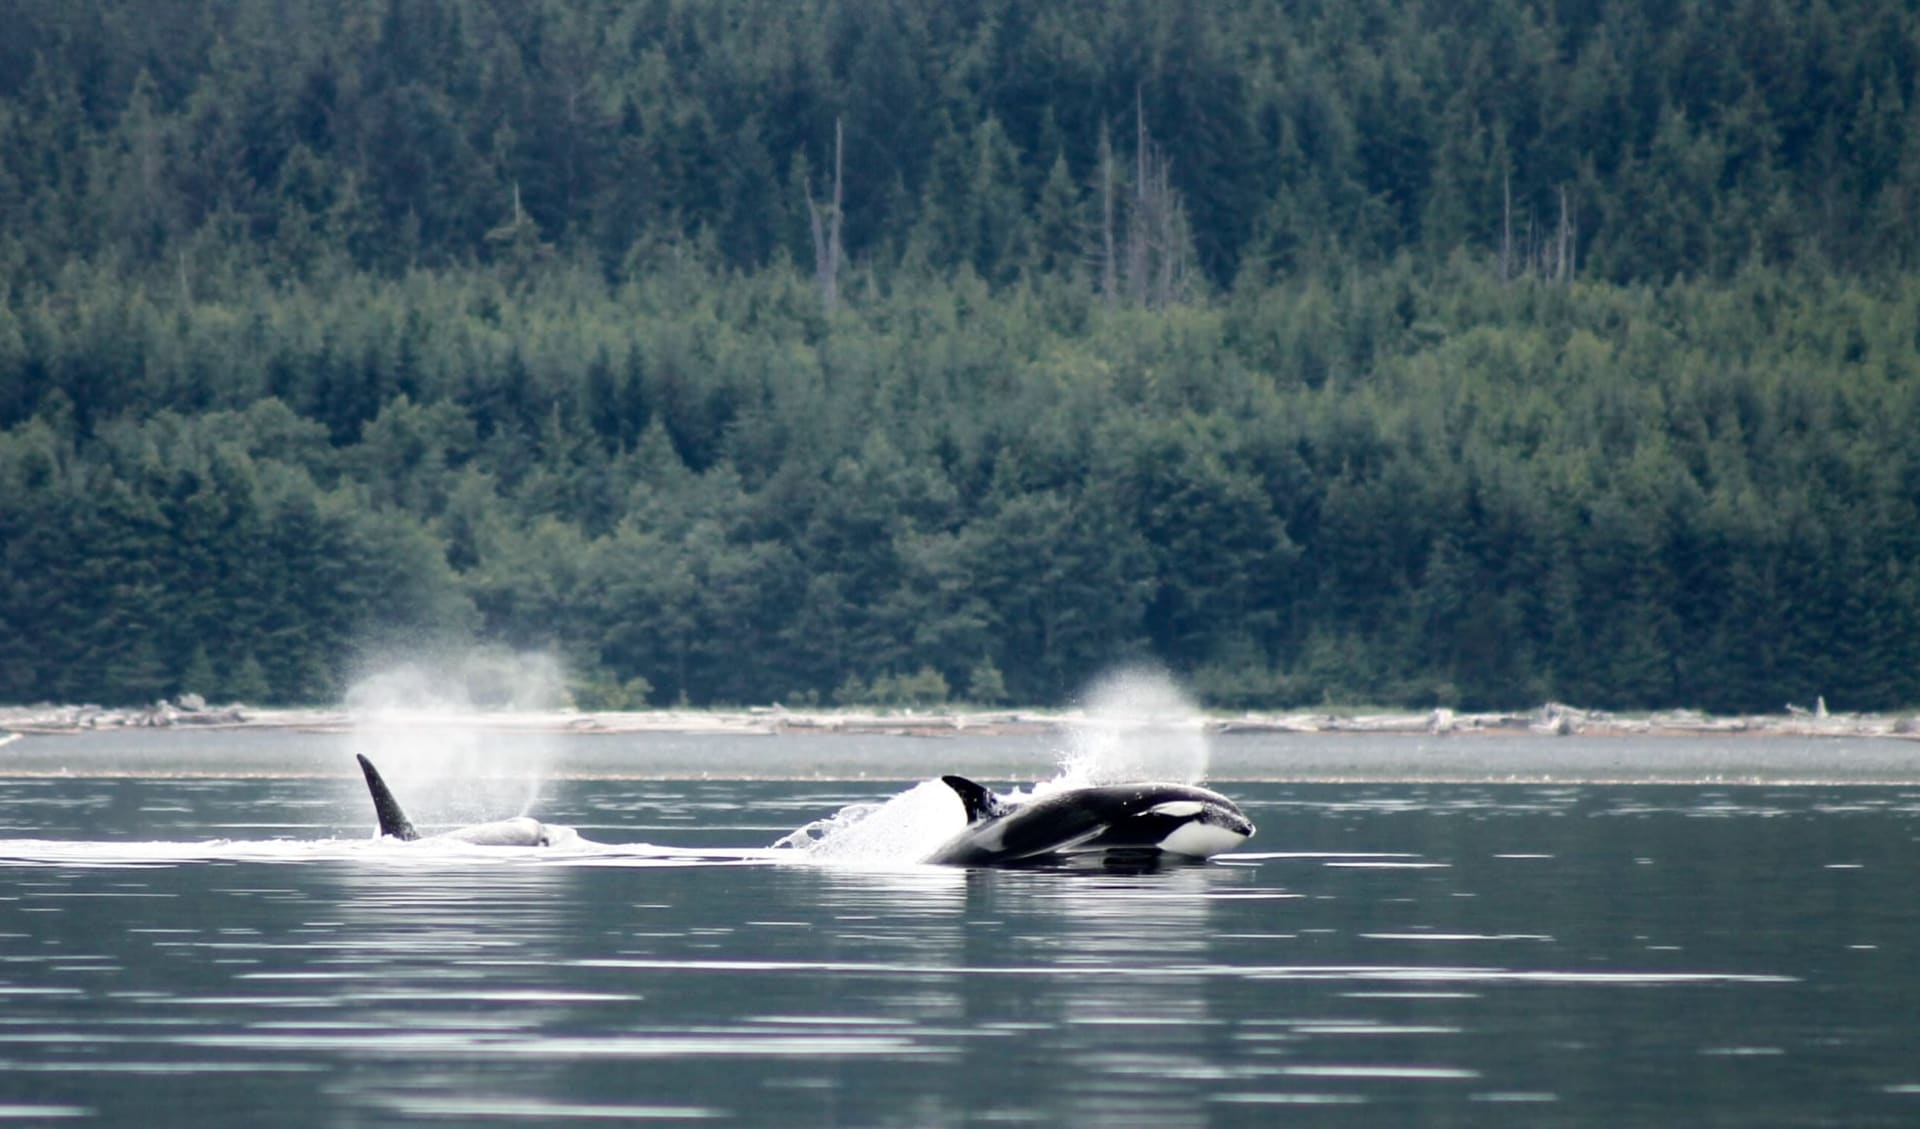 Bärenbeobachtung Farewell Lodge ab Vancouver Island: activities: Farewell lodge - Whalewatching